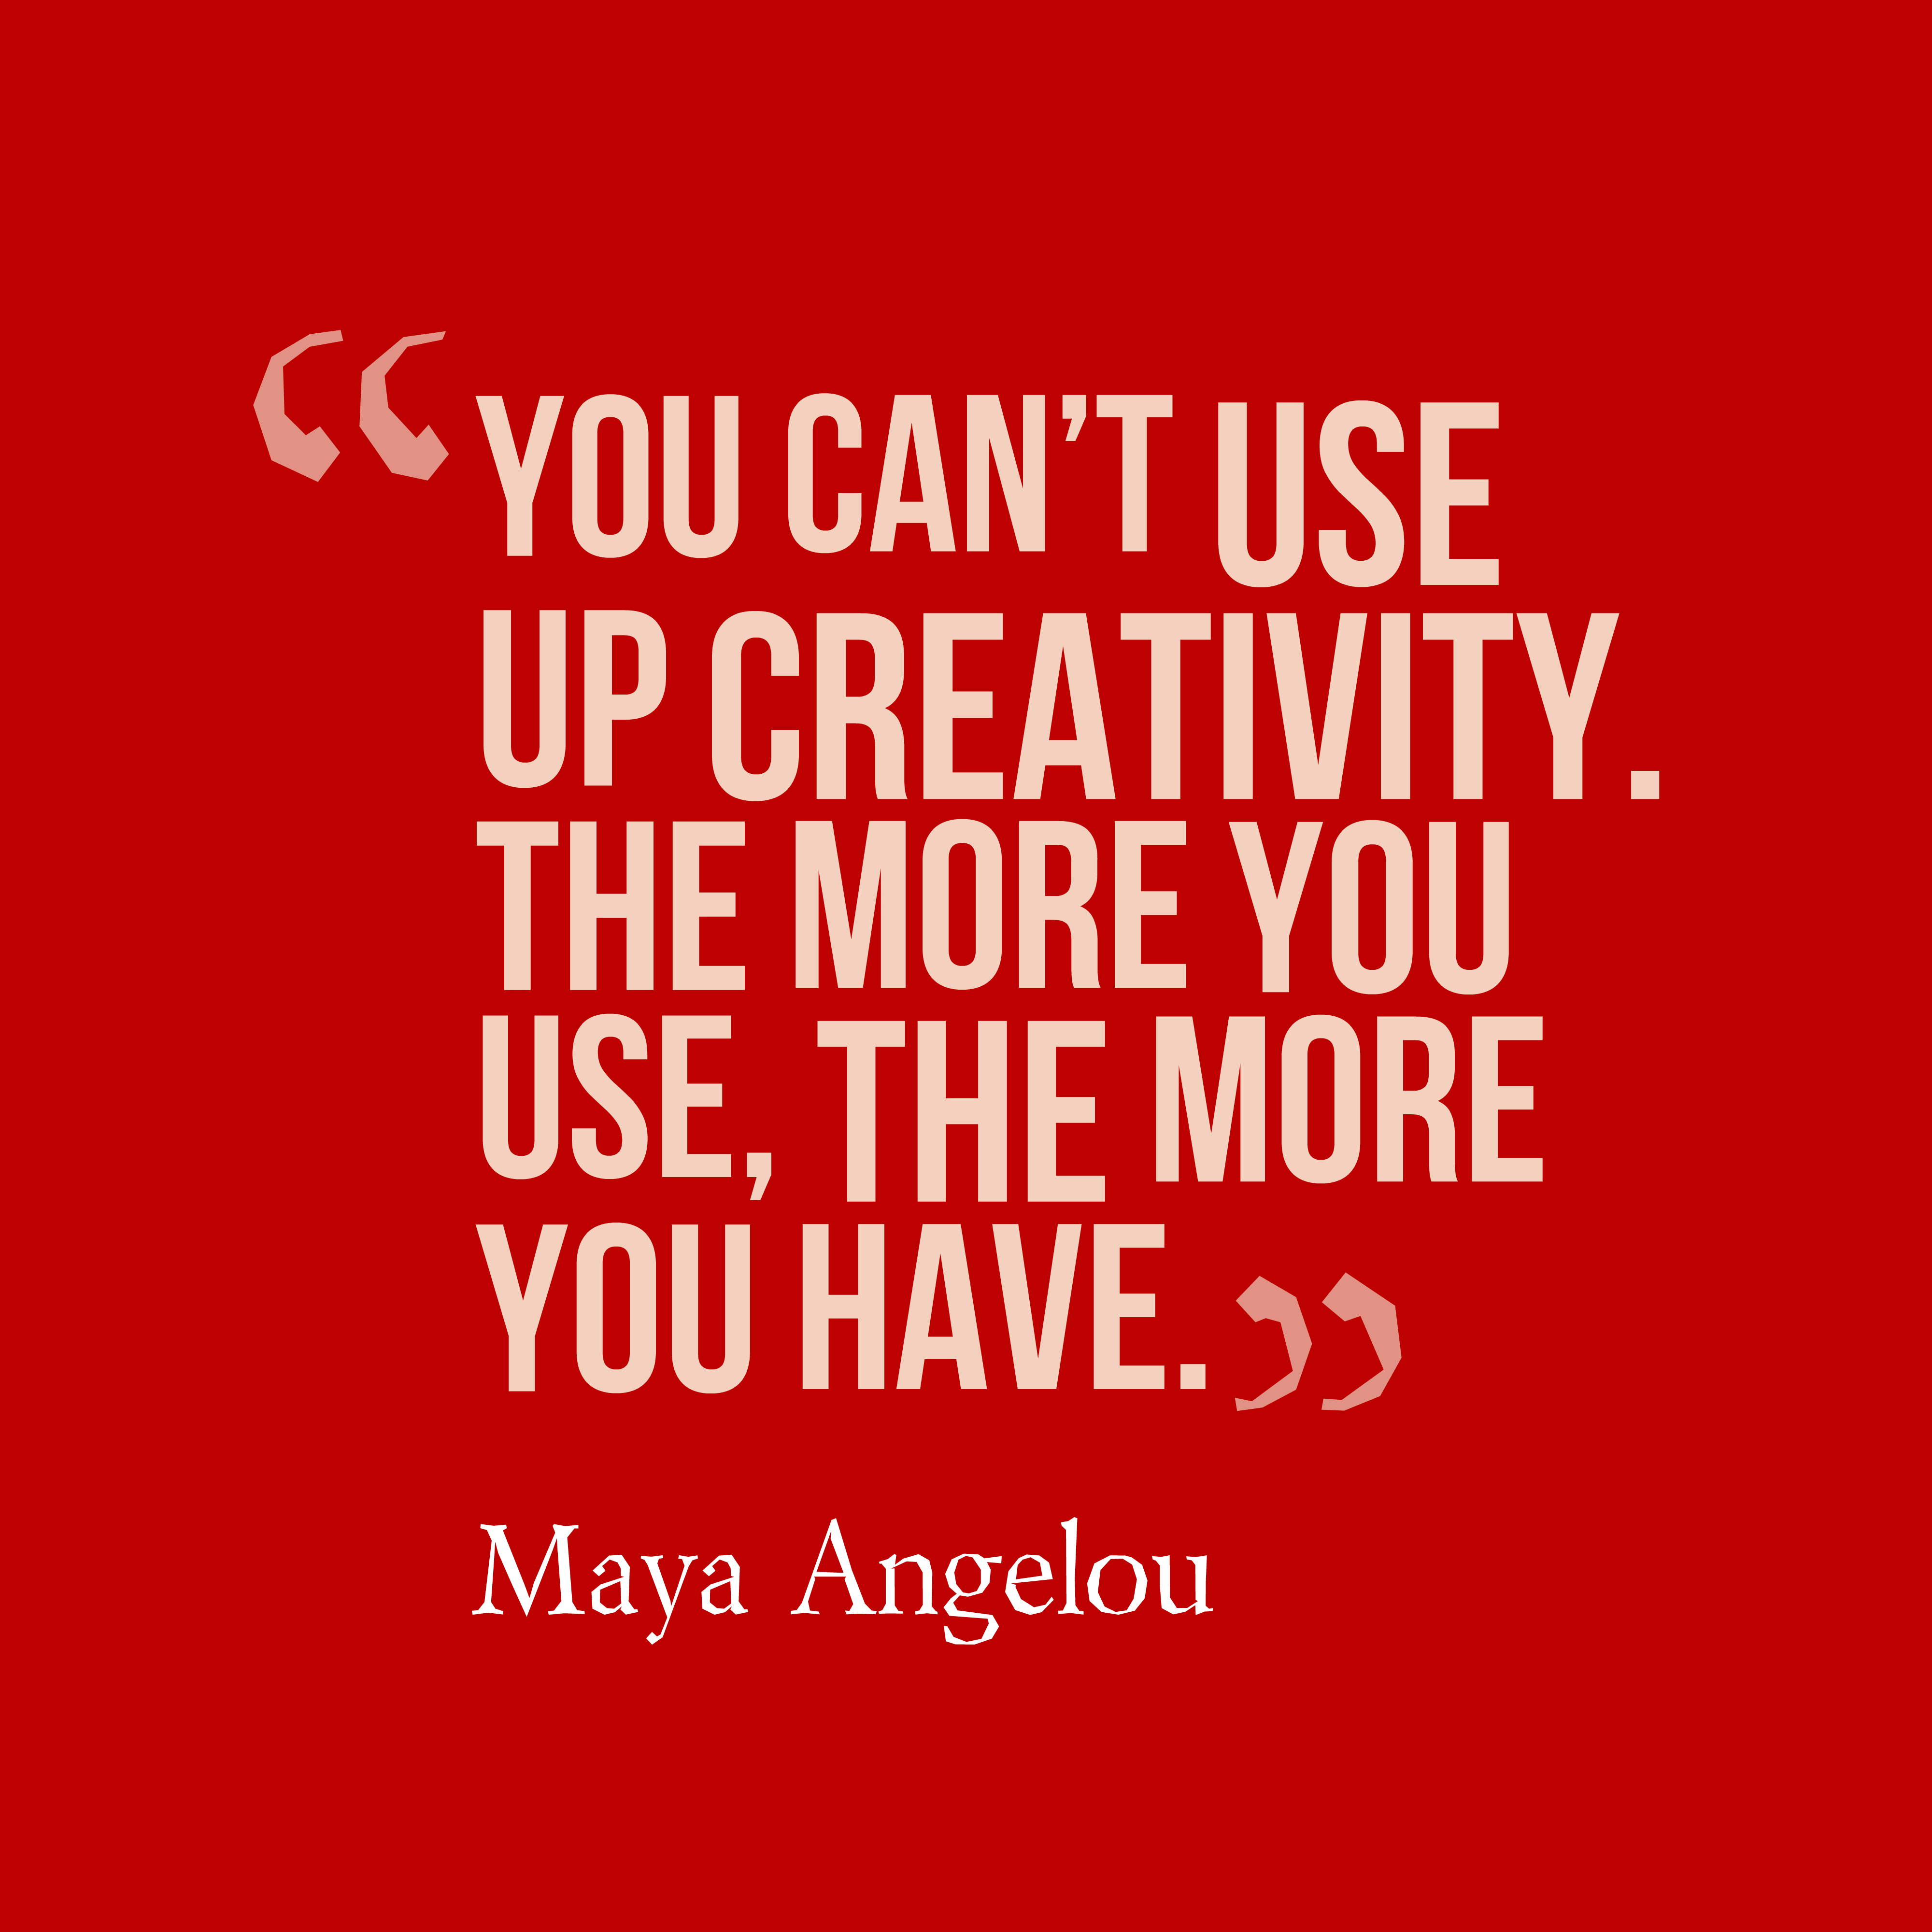 Quotes On Creativity | Maya Angelou Quote About Creativity